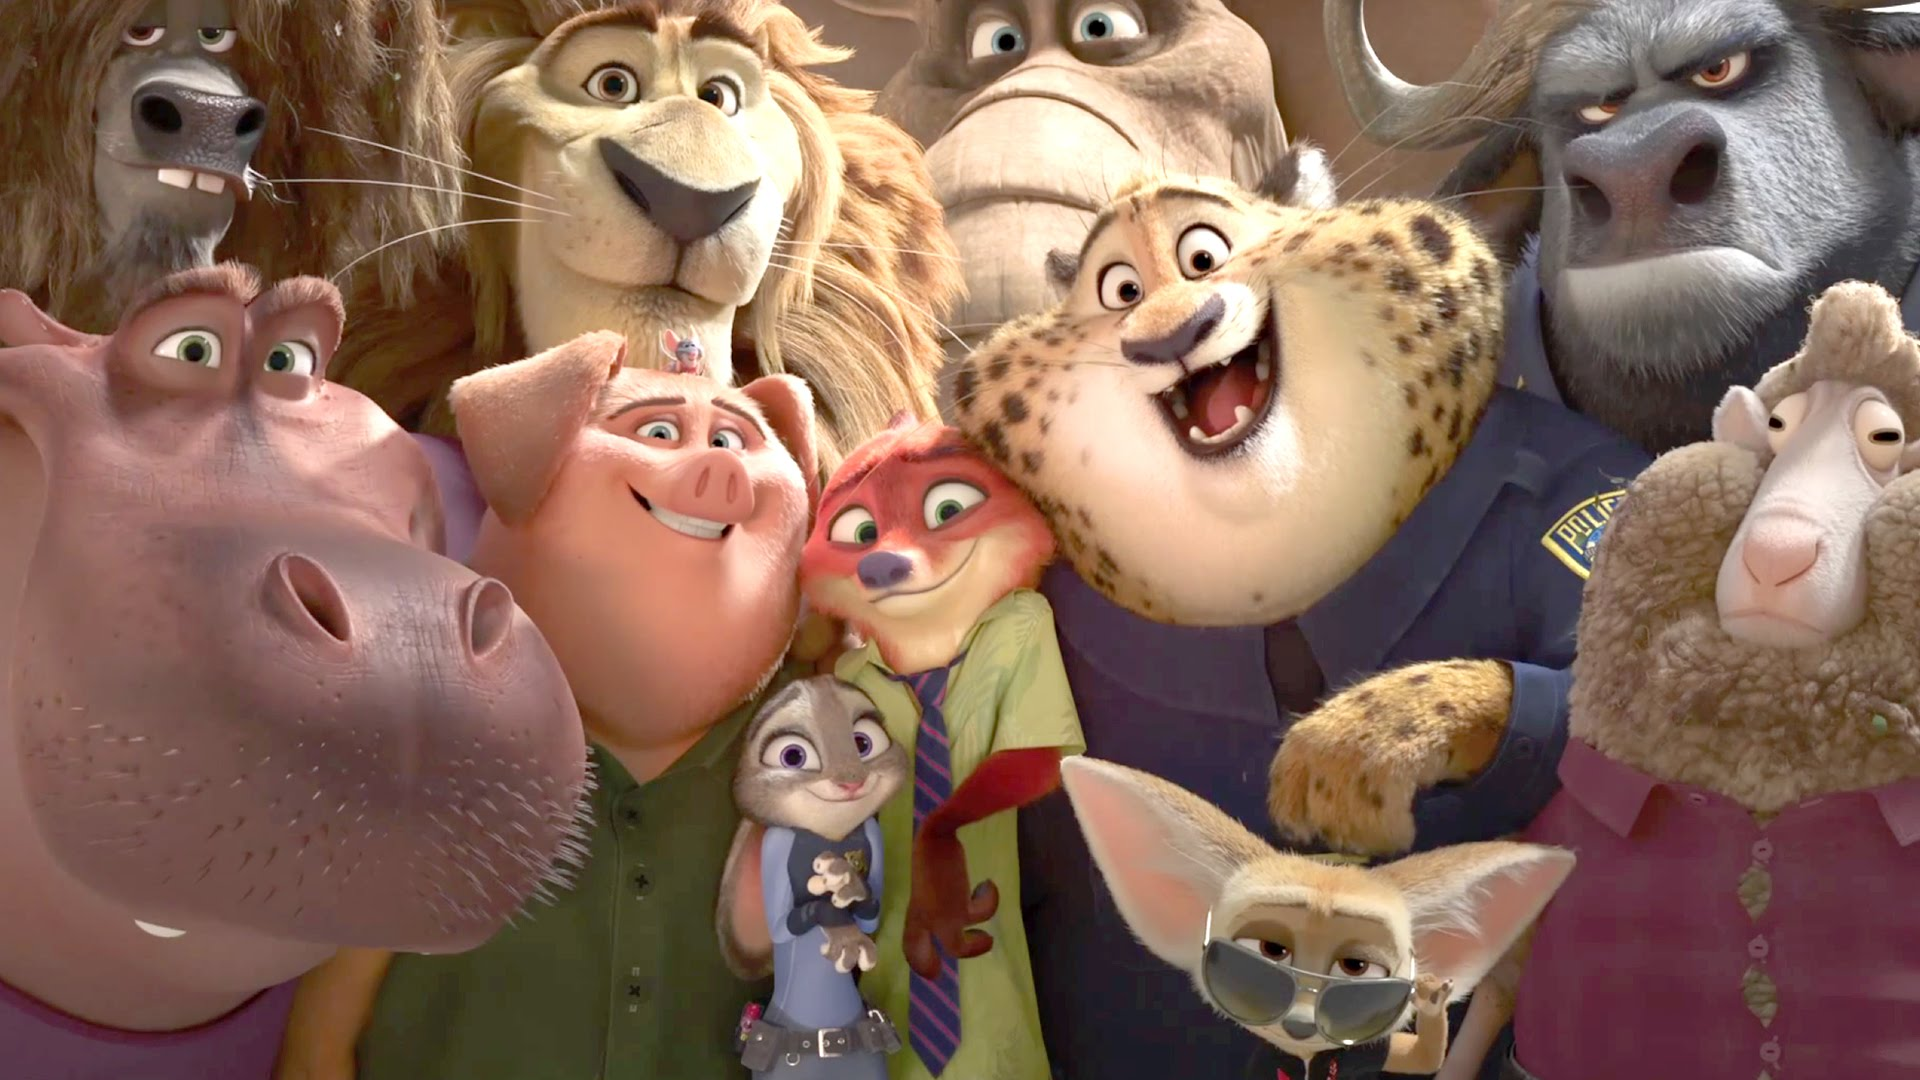 amazing zootopia movie wallpaper 3d movie images picture download